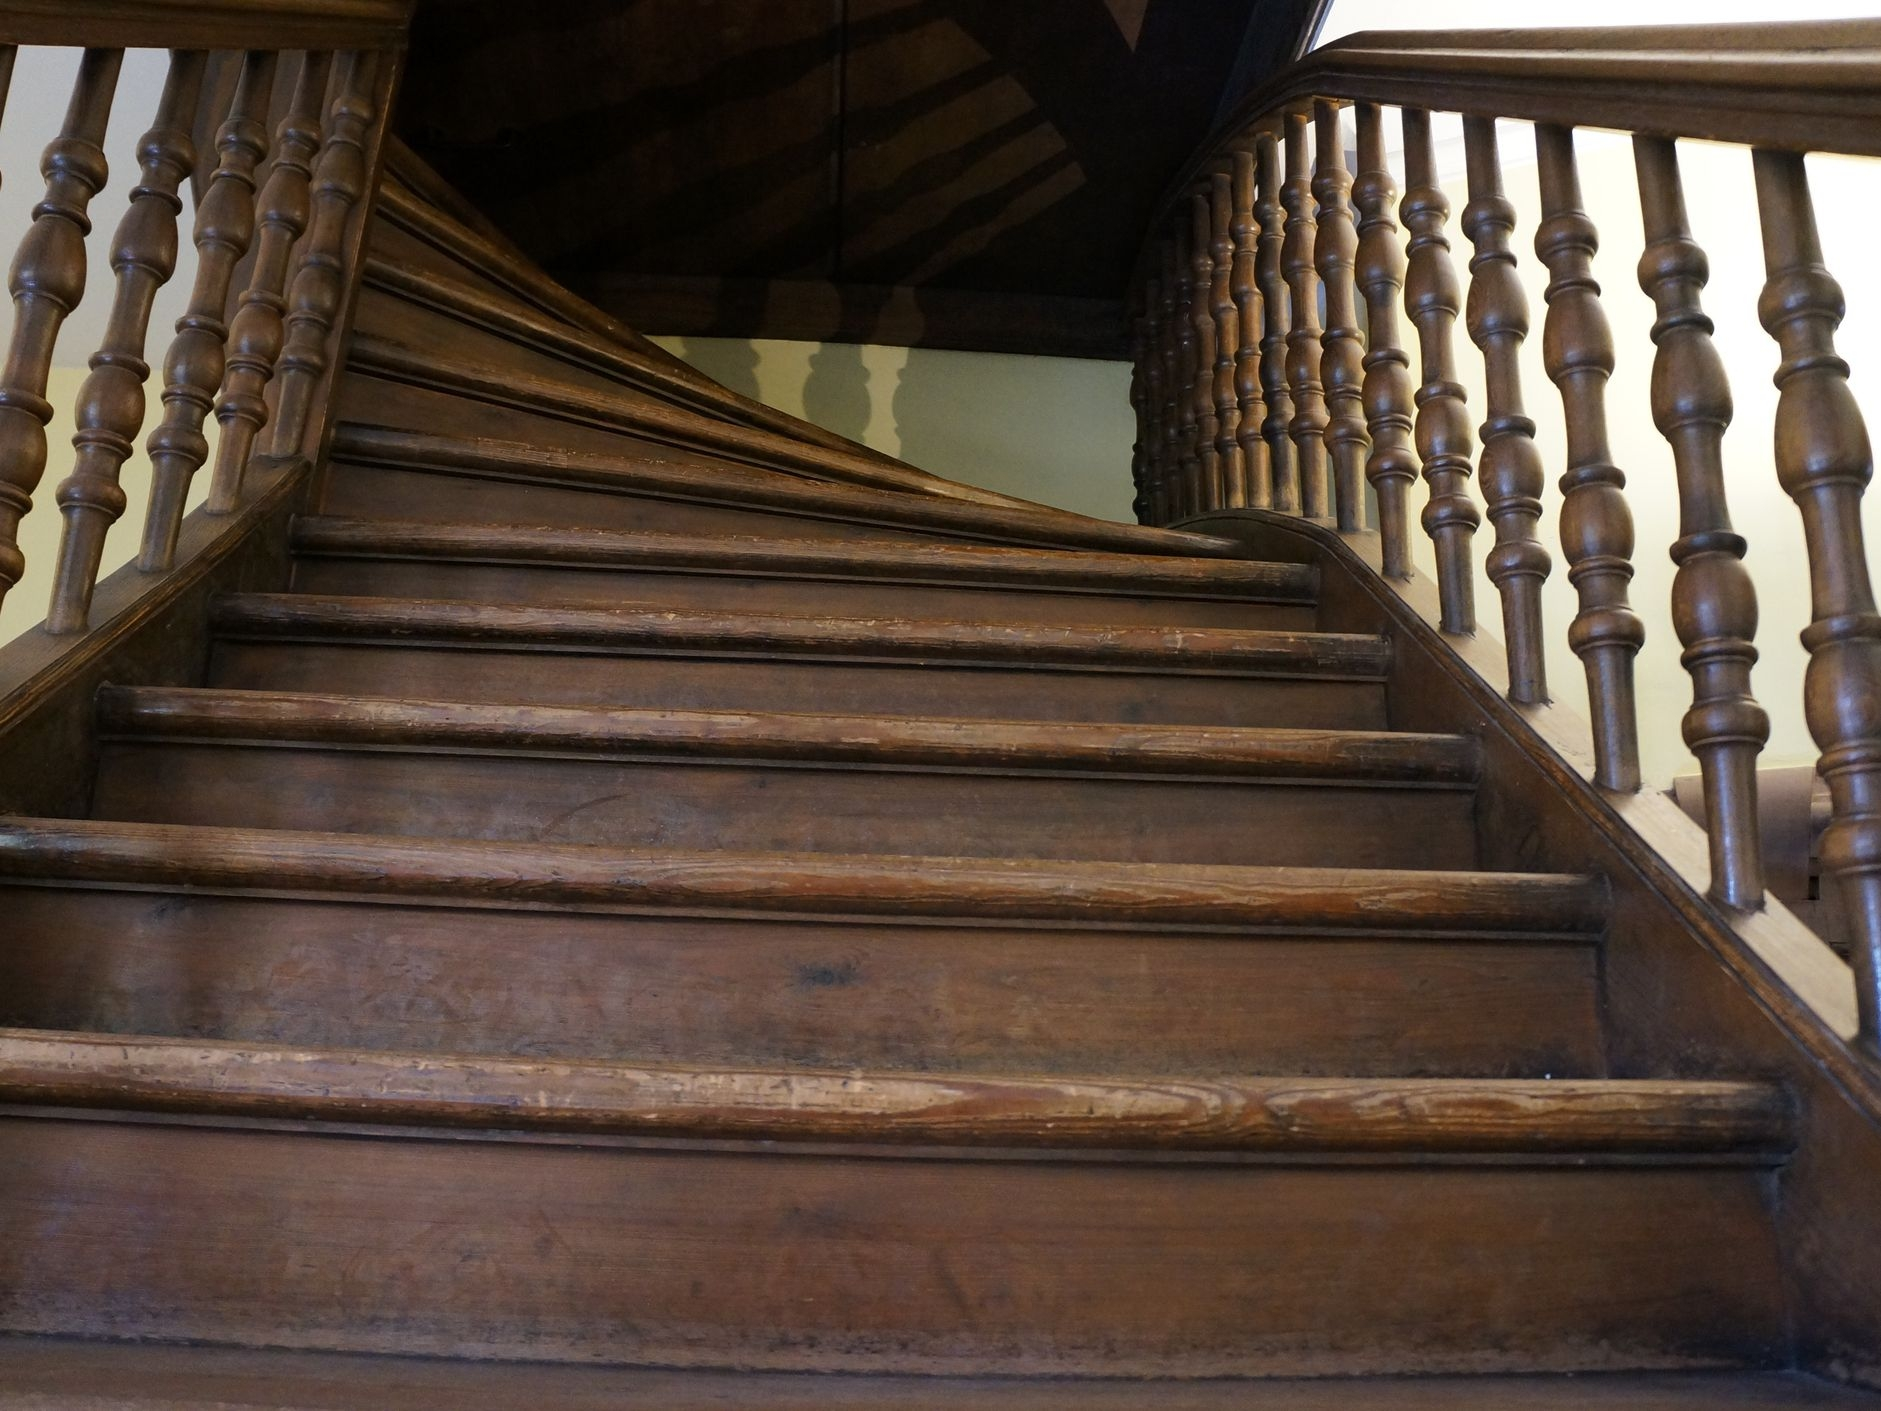 How To Fix Creaky Stairs | Loose Carpet On Stairs | Runner | Fixing | Stair Treads | Stair Nosing | Laminate Flooring